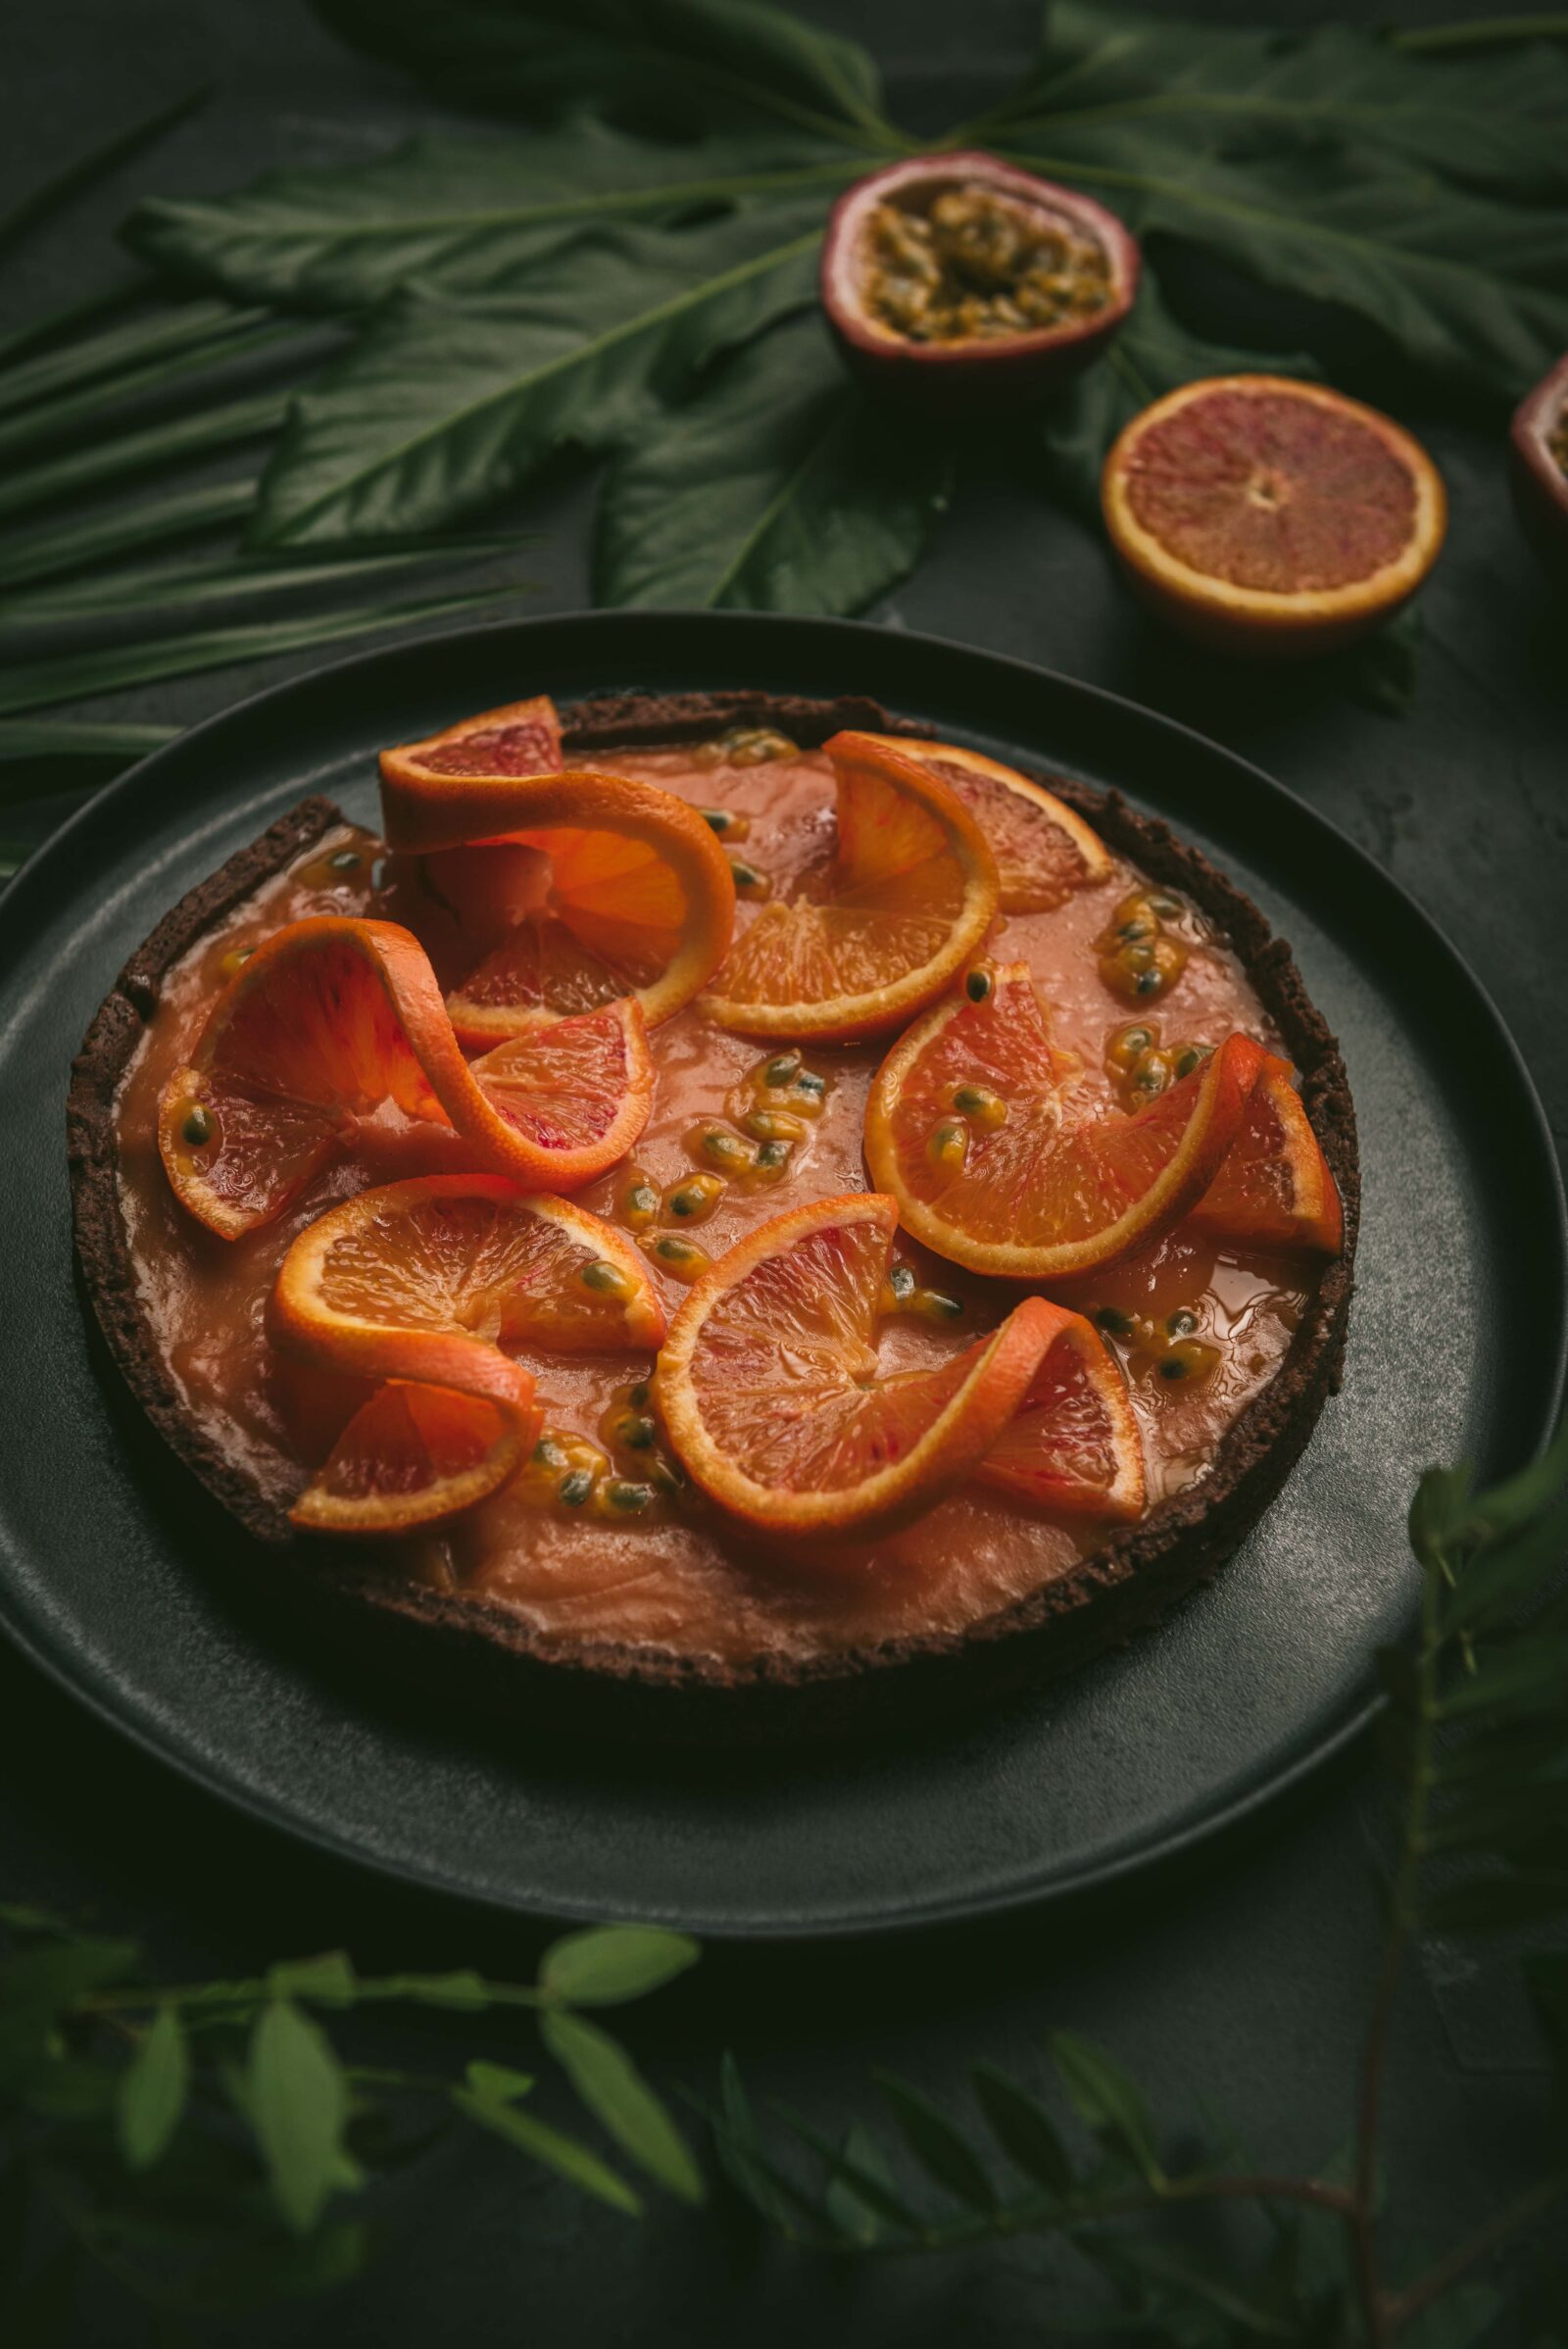 Cette tarte à l'orange sanguine et aux fruits de la passion rappelle la tarte au citron mais en version beaucoup plus exotique.